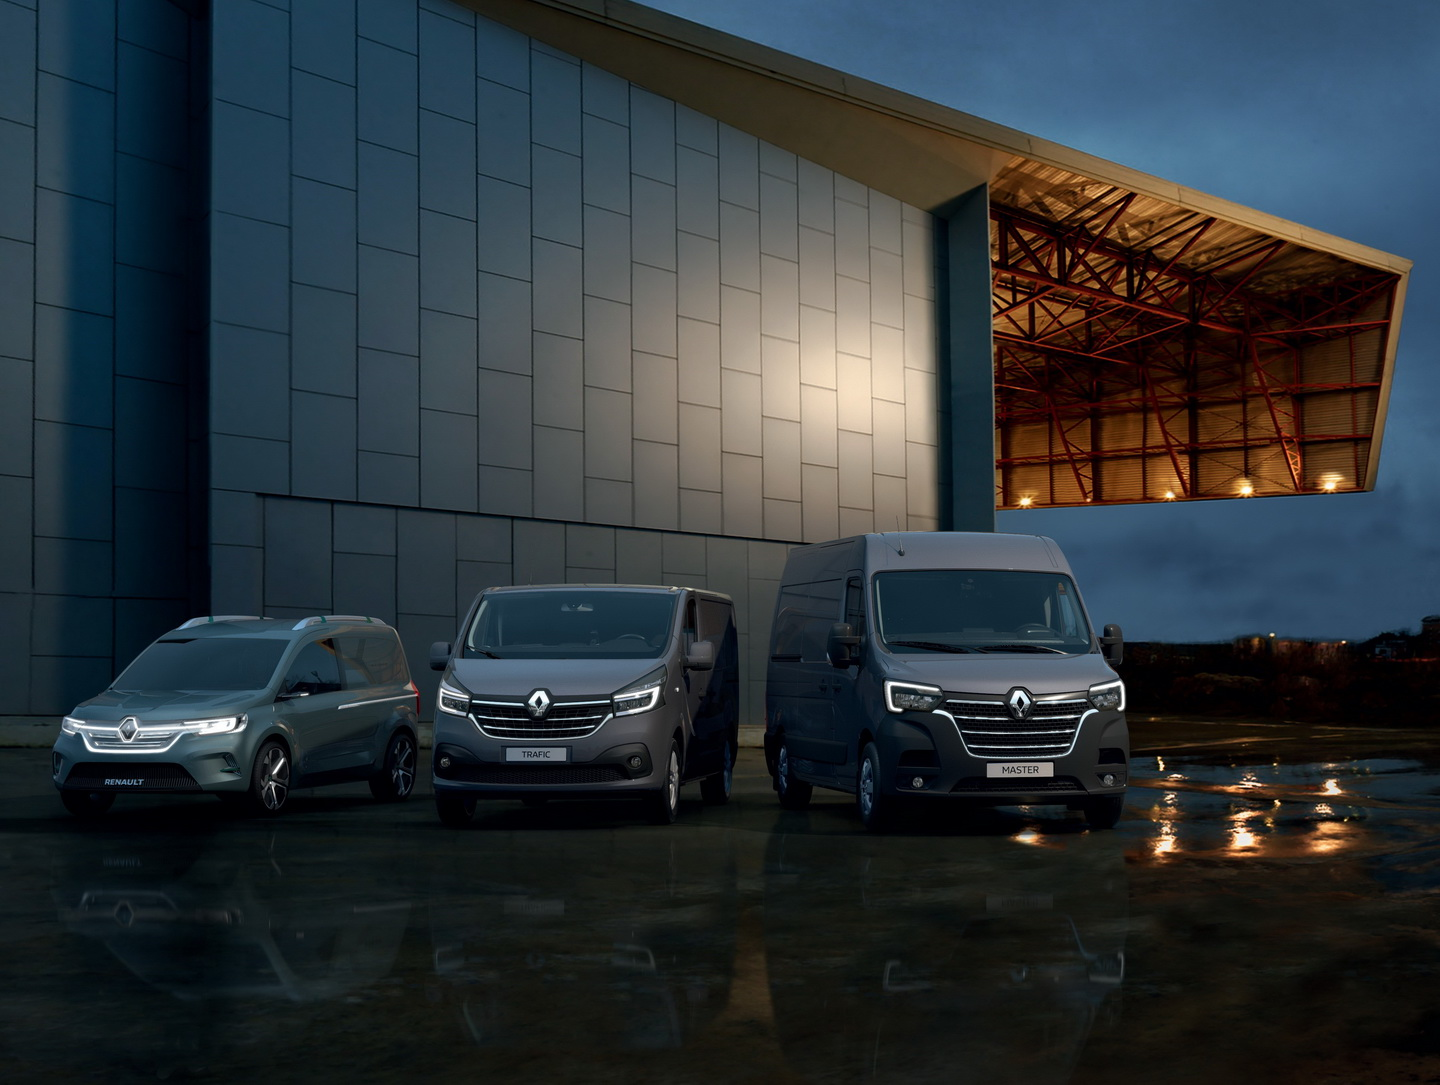 New 2019 Renault Trafic facelift 17